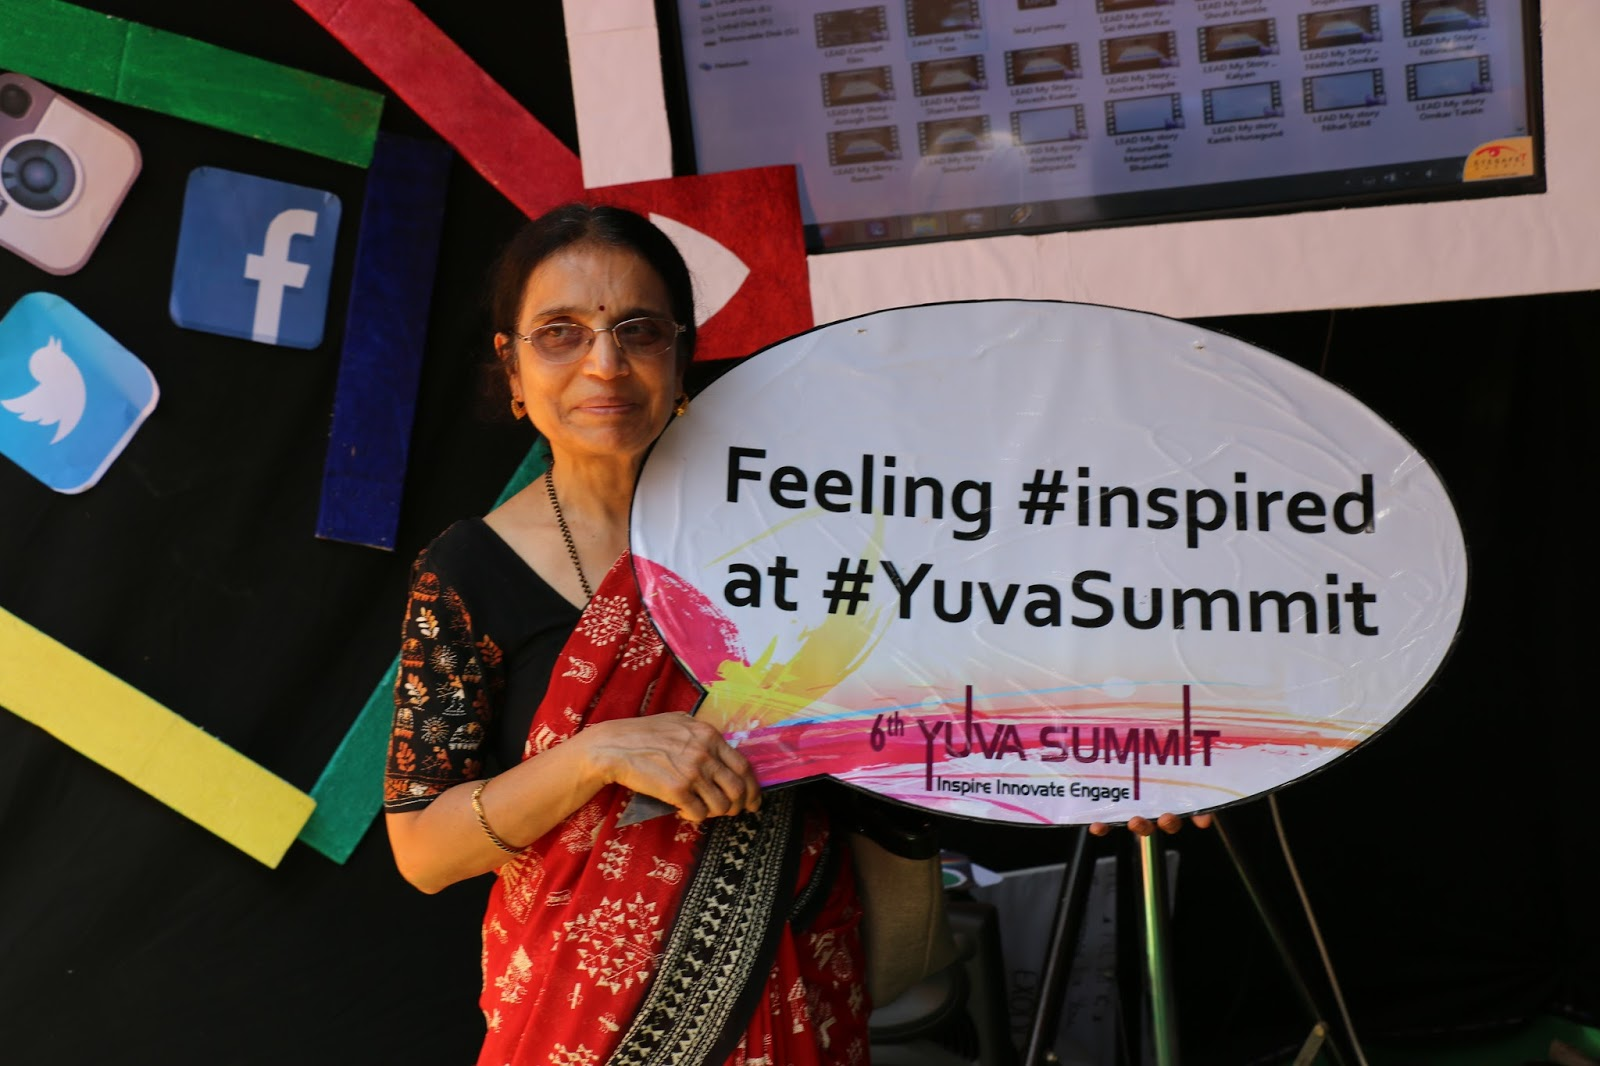 Yuva Summit 2016